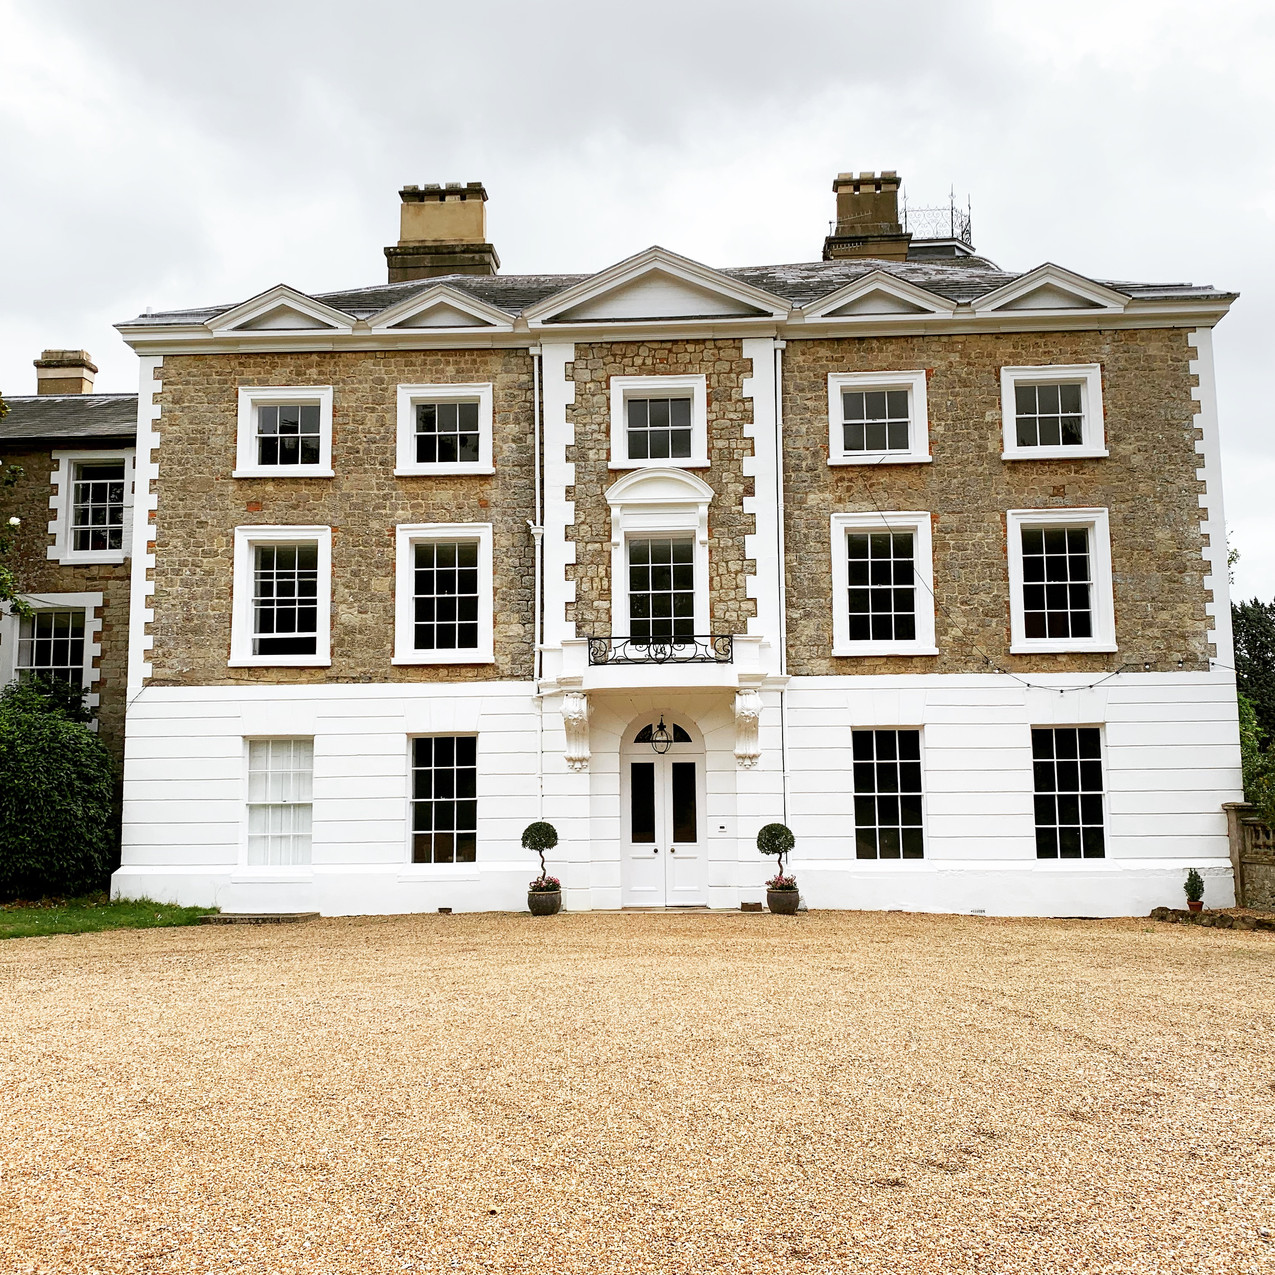 Oxon Hoath Country House